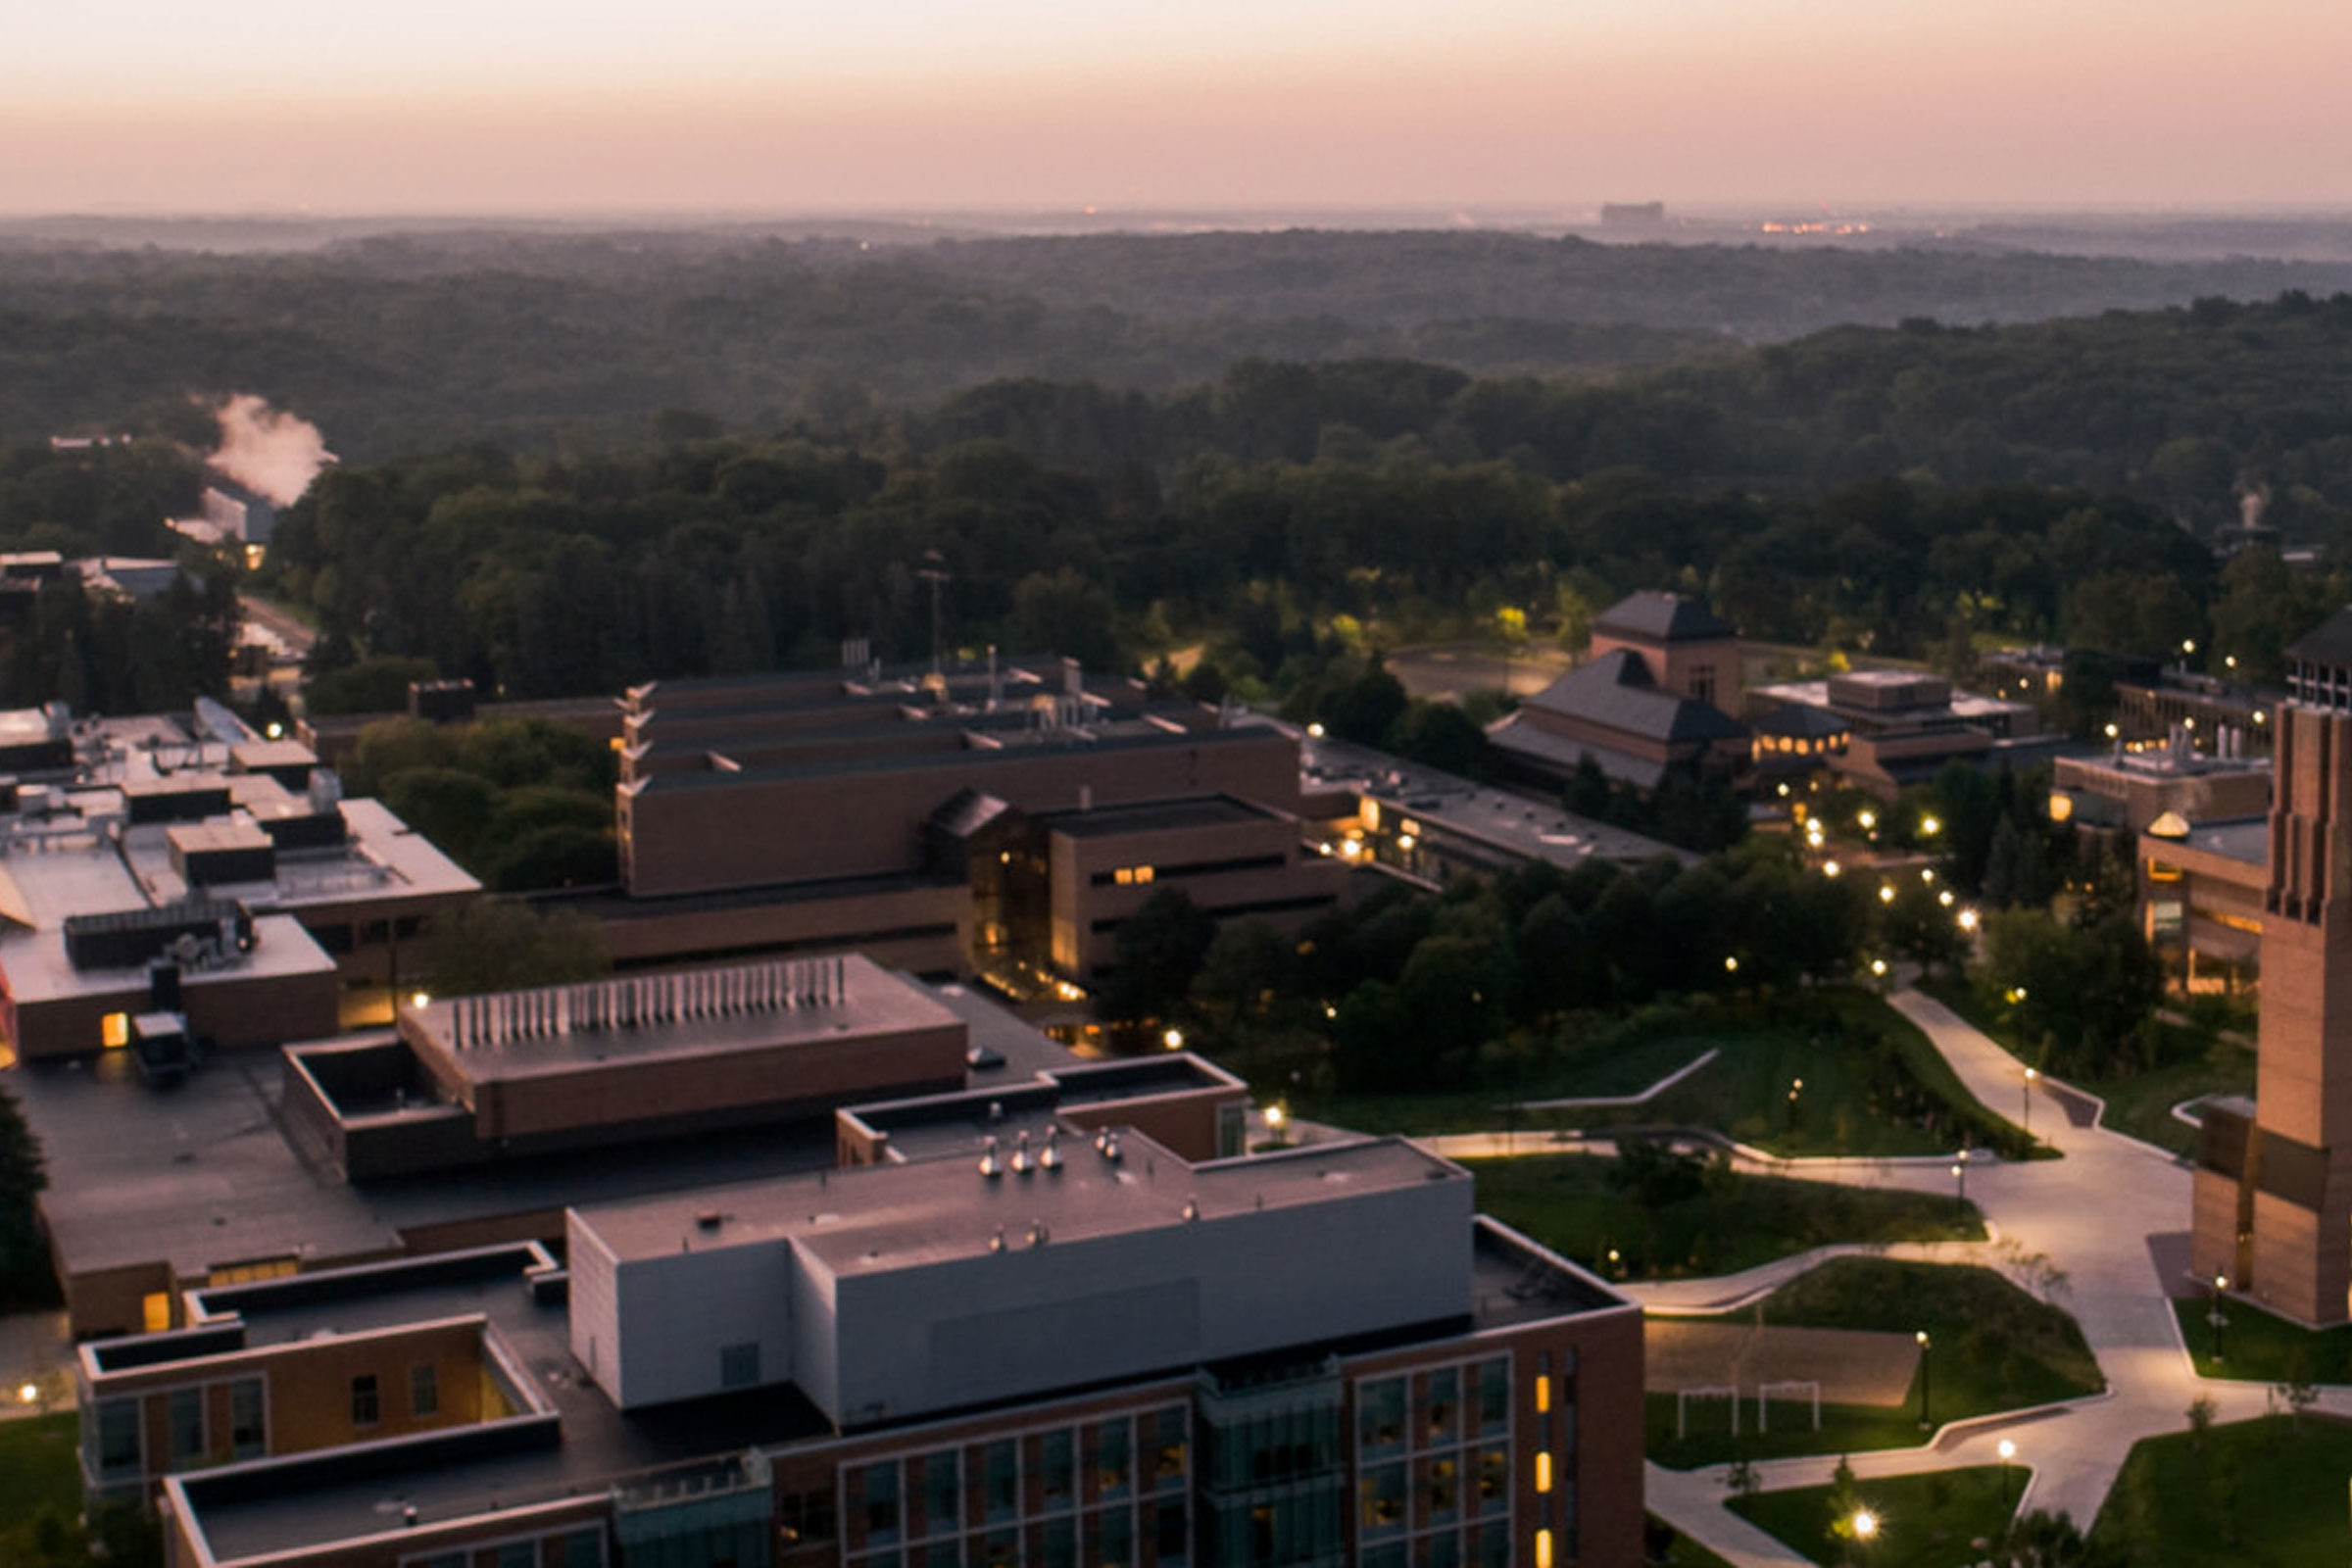 The morning sun rises on the Grove at North Campus of the Universities of Michigan